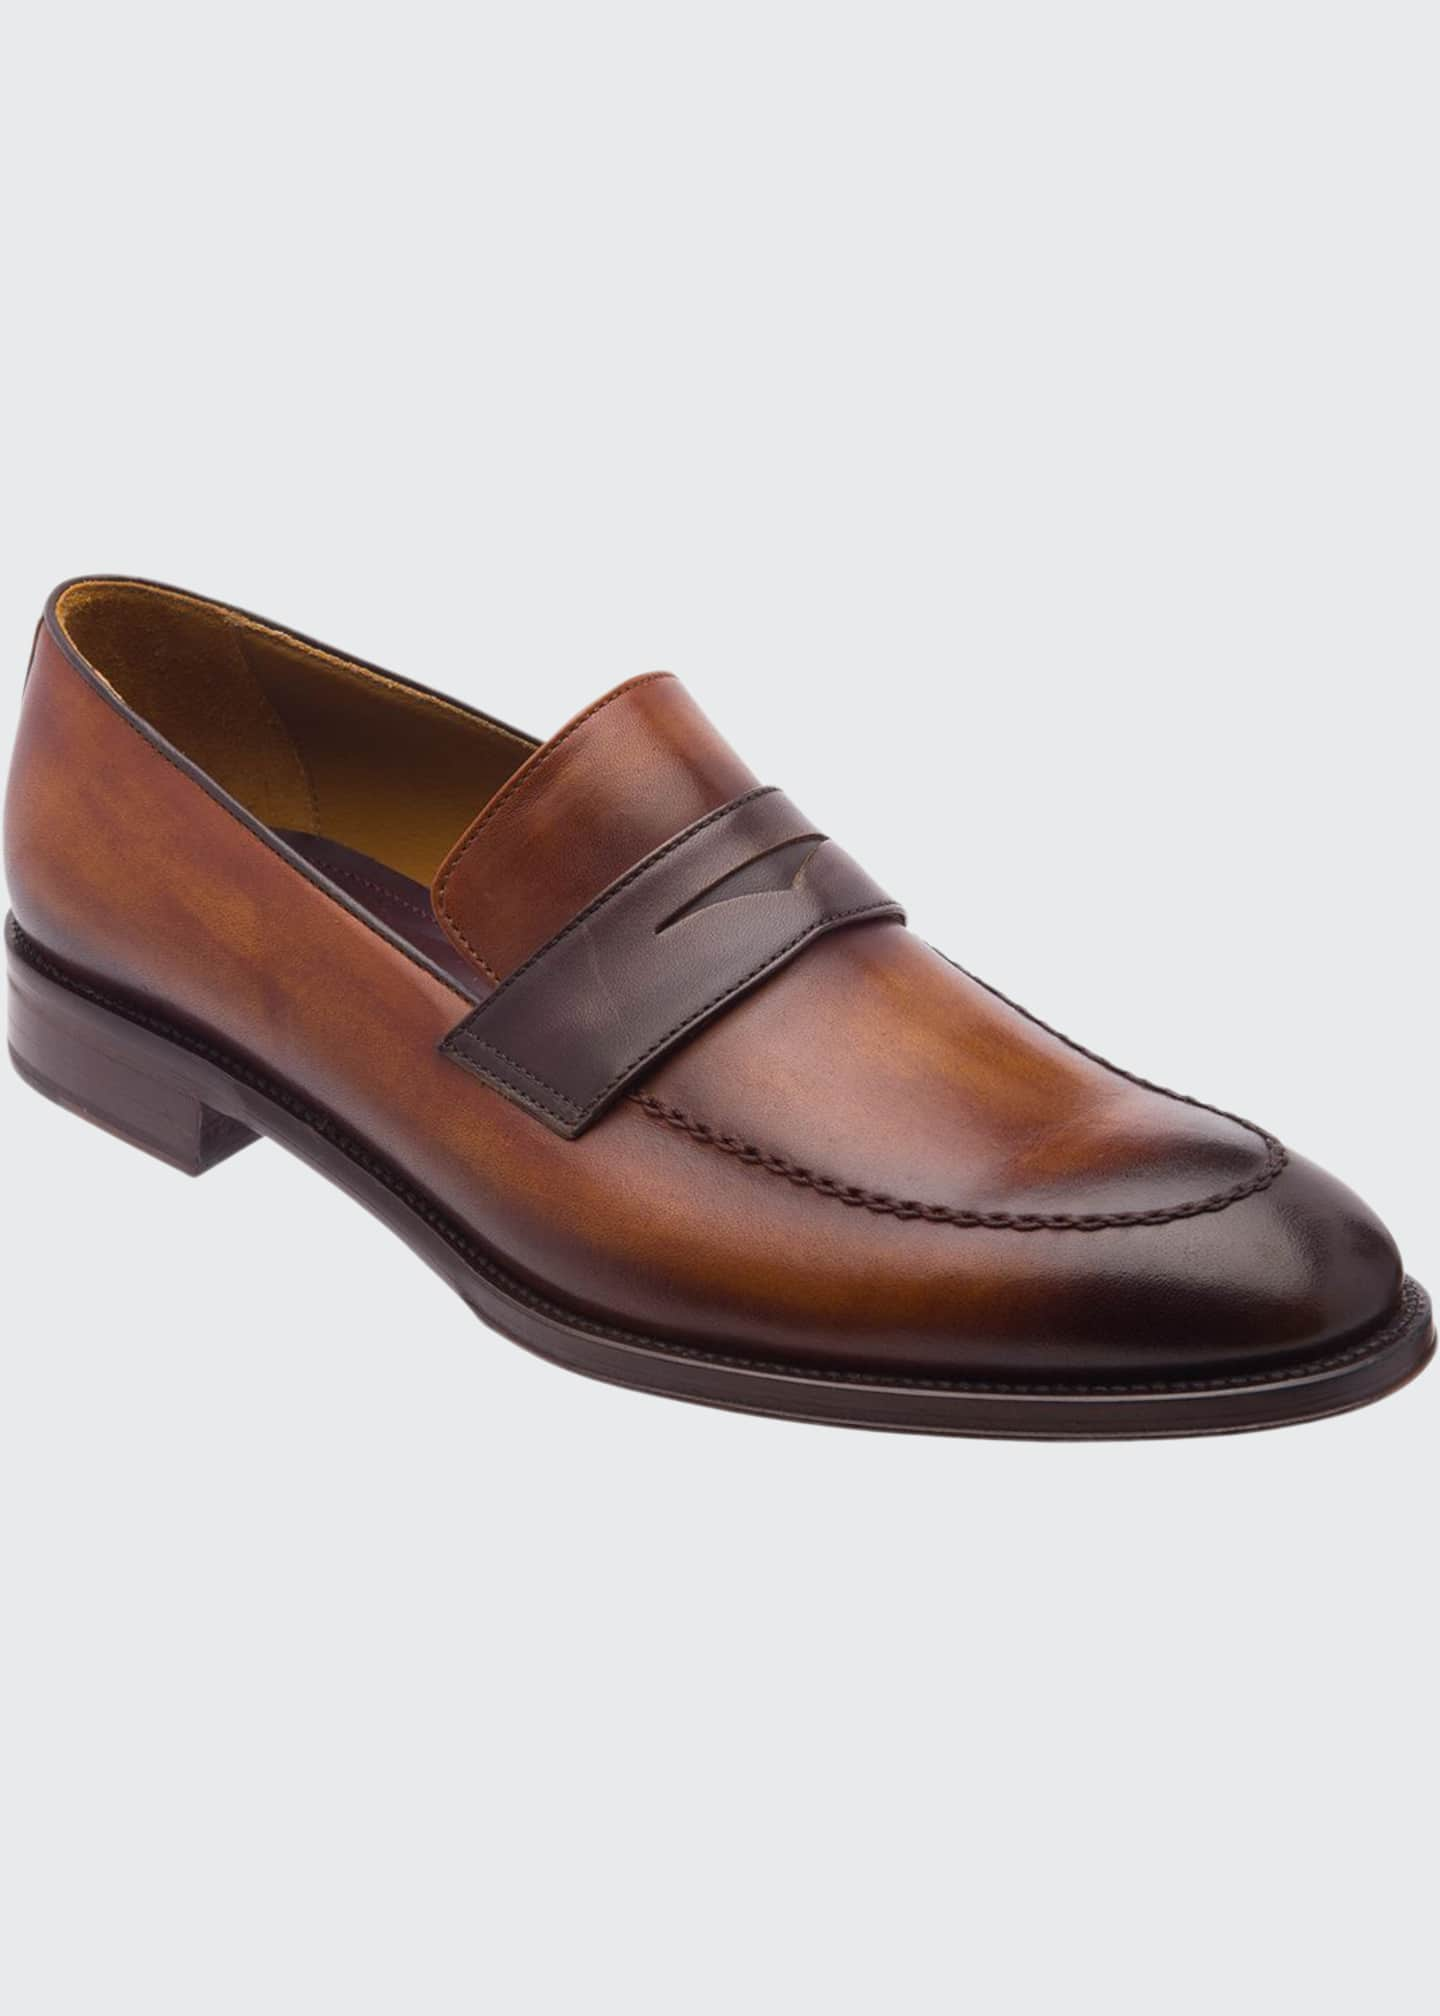 Bruno Magli Men's Arezzo Burnished Leather Penny Loafers